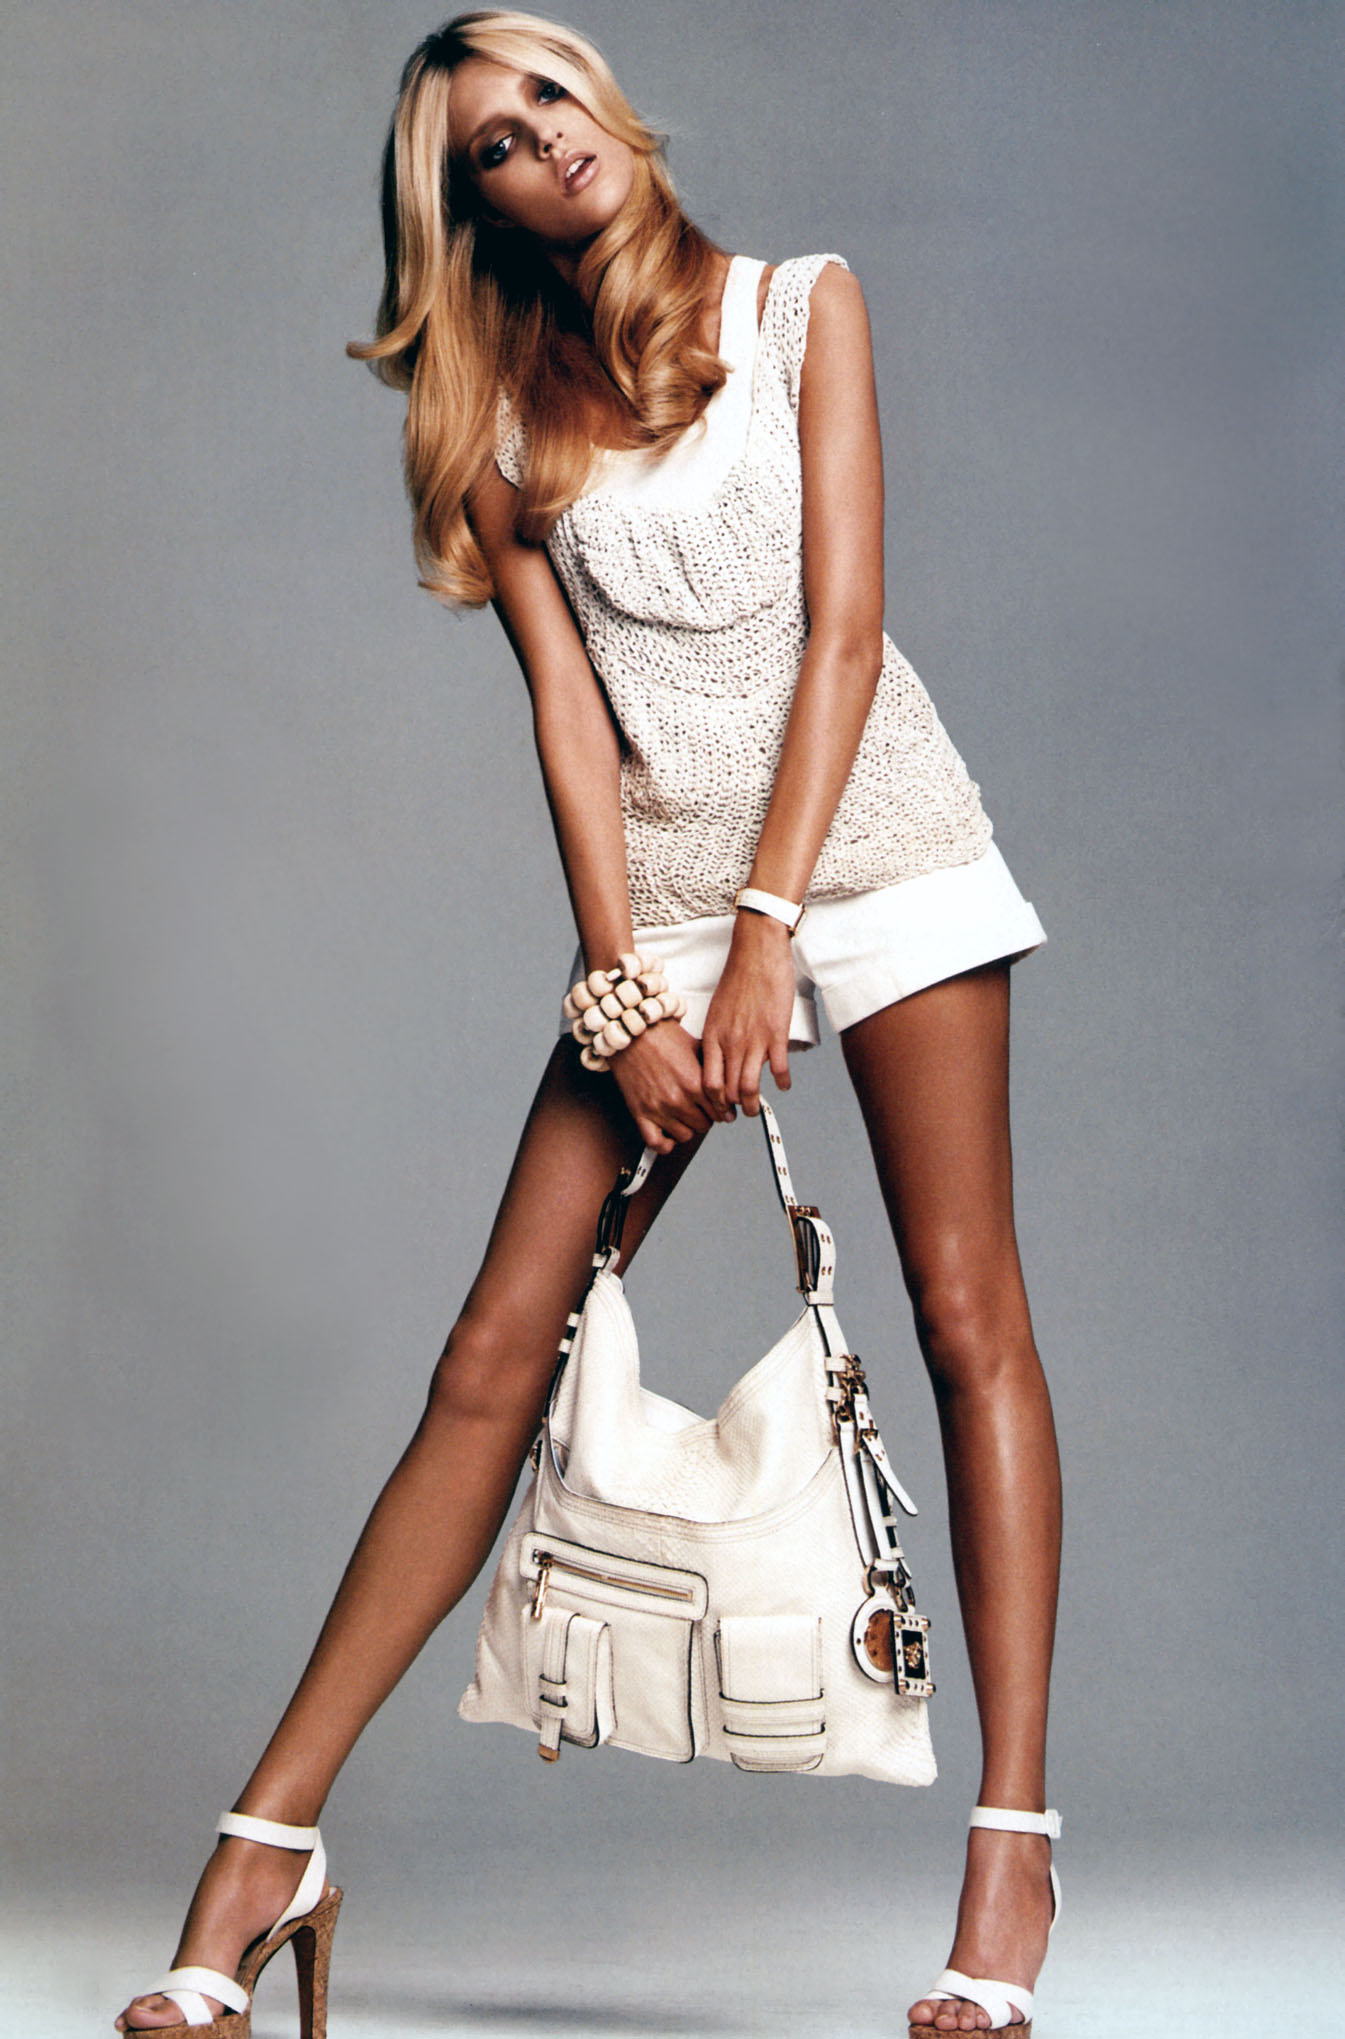 Anja Rubik photo #15371